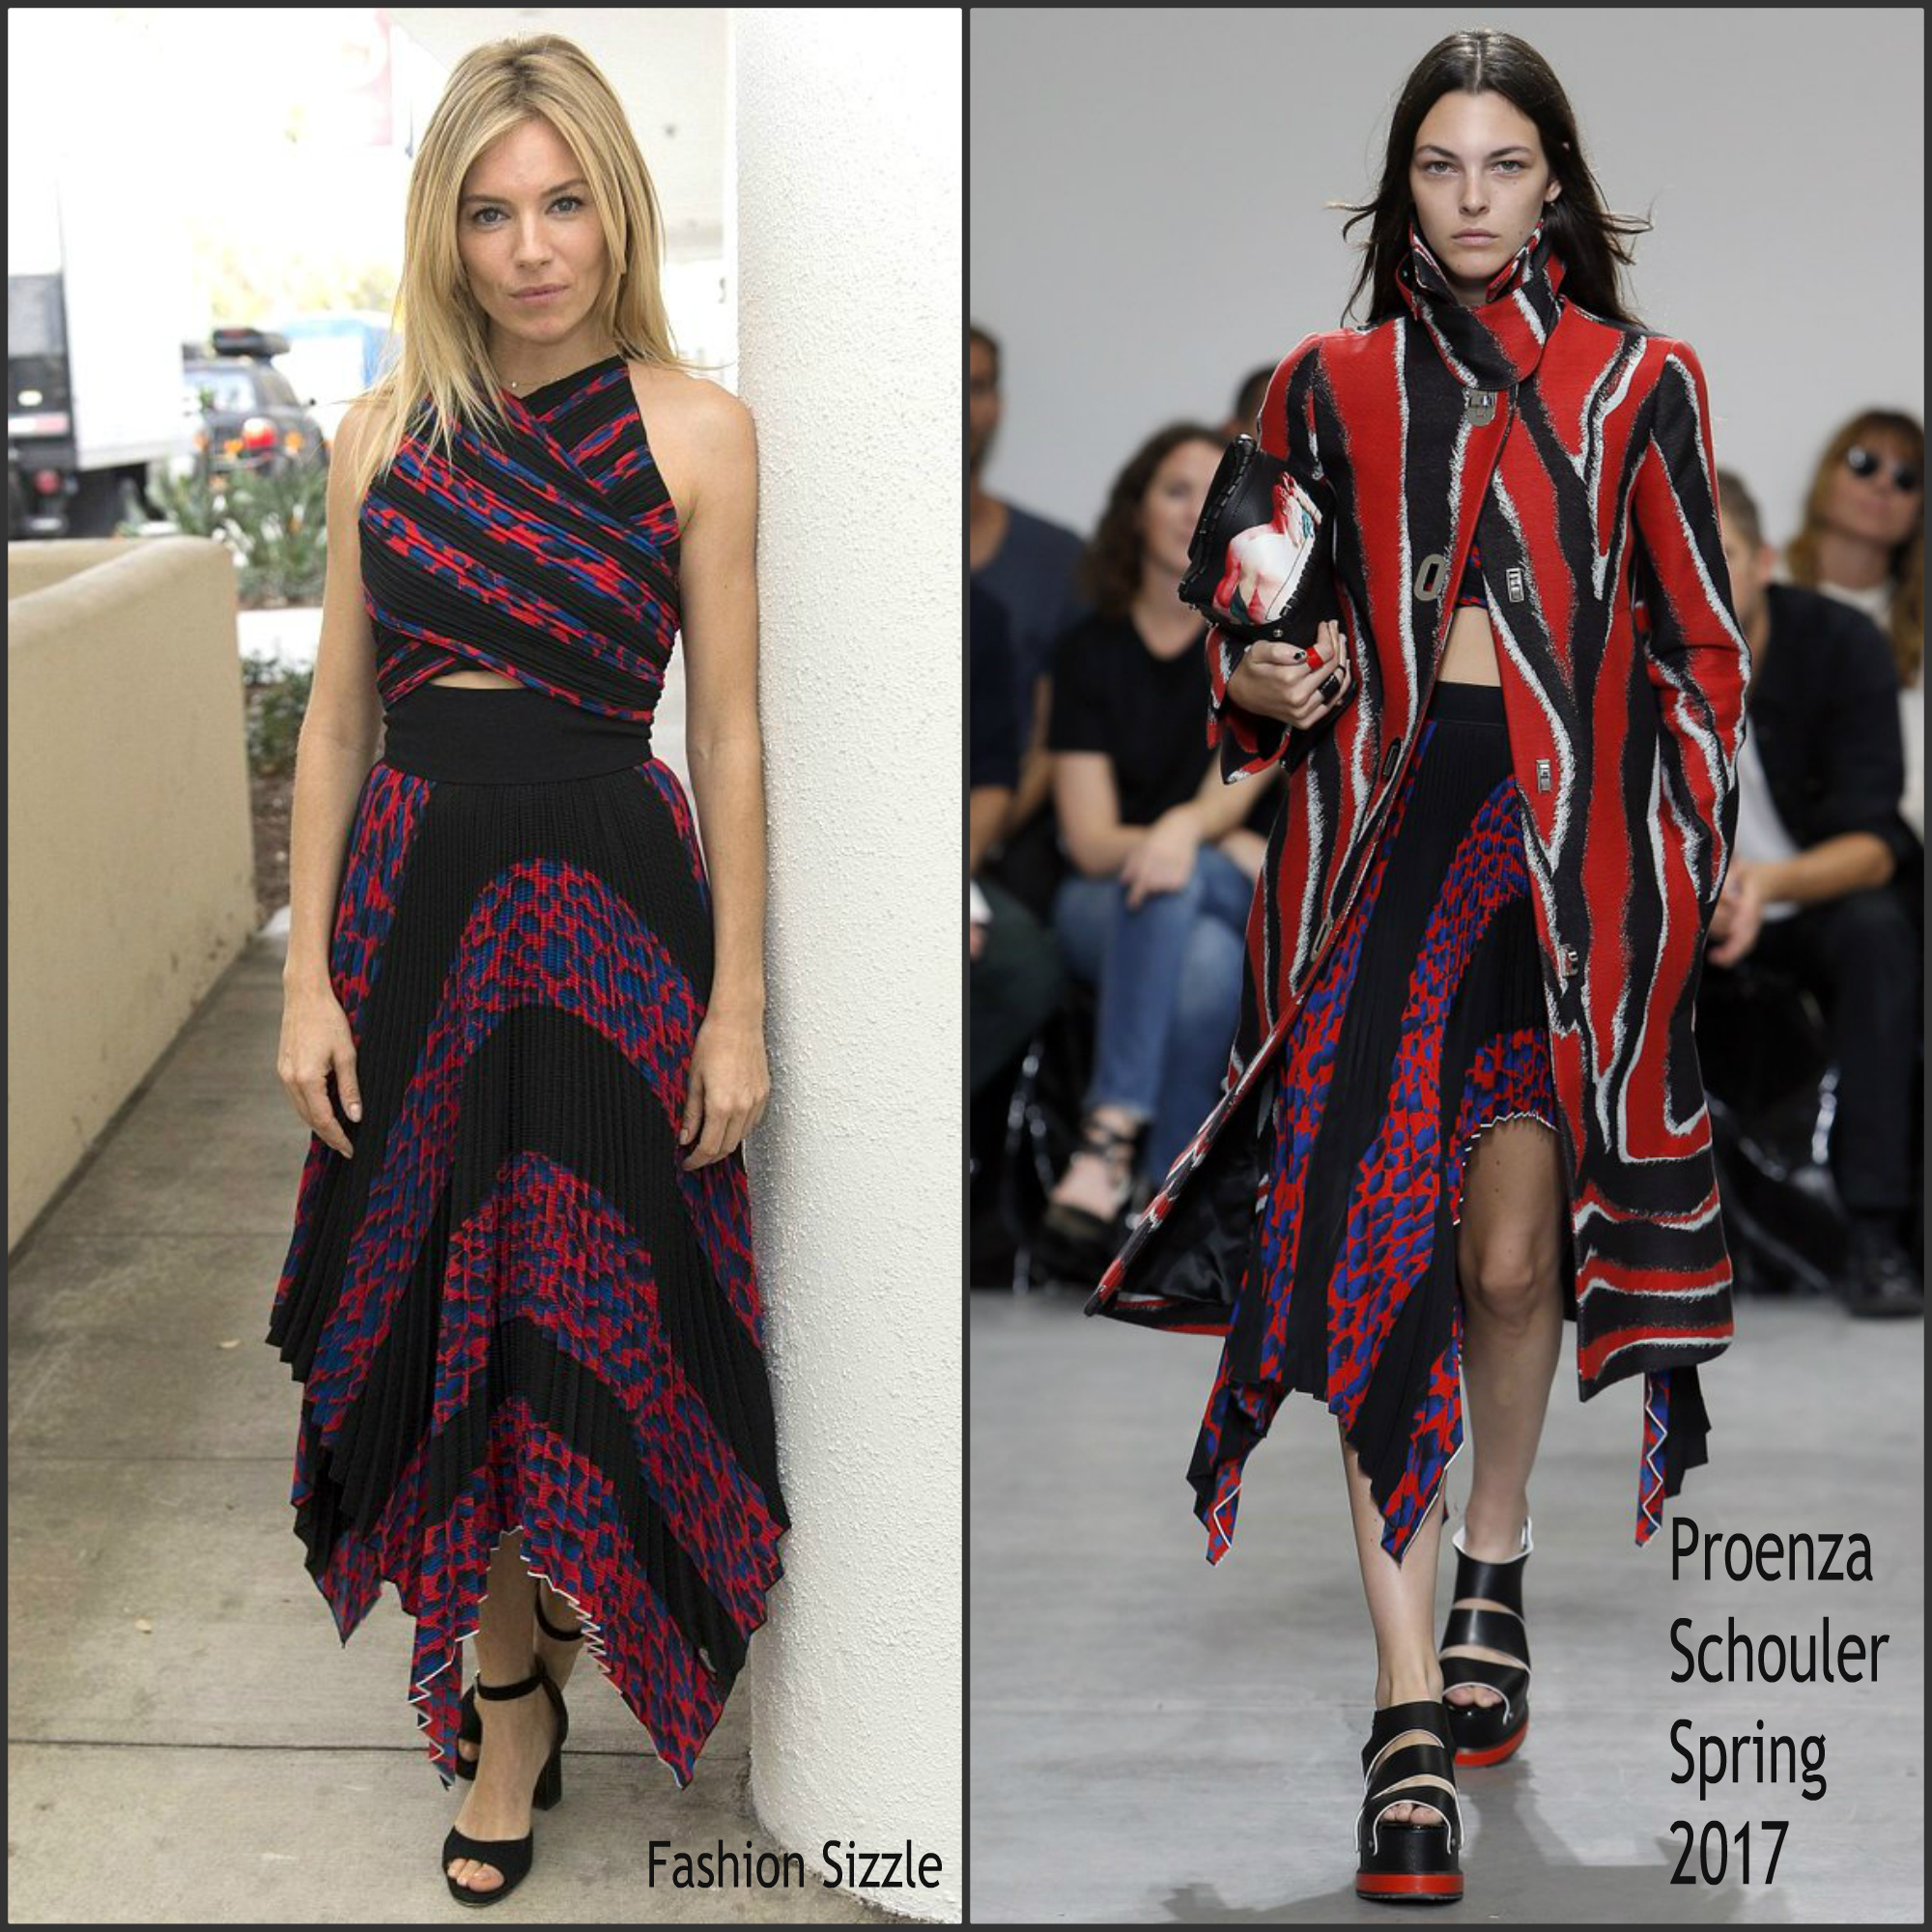 sienna-miller-in-proenza-schouler-at-live-by-night-la-press-conference